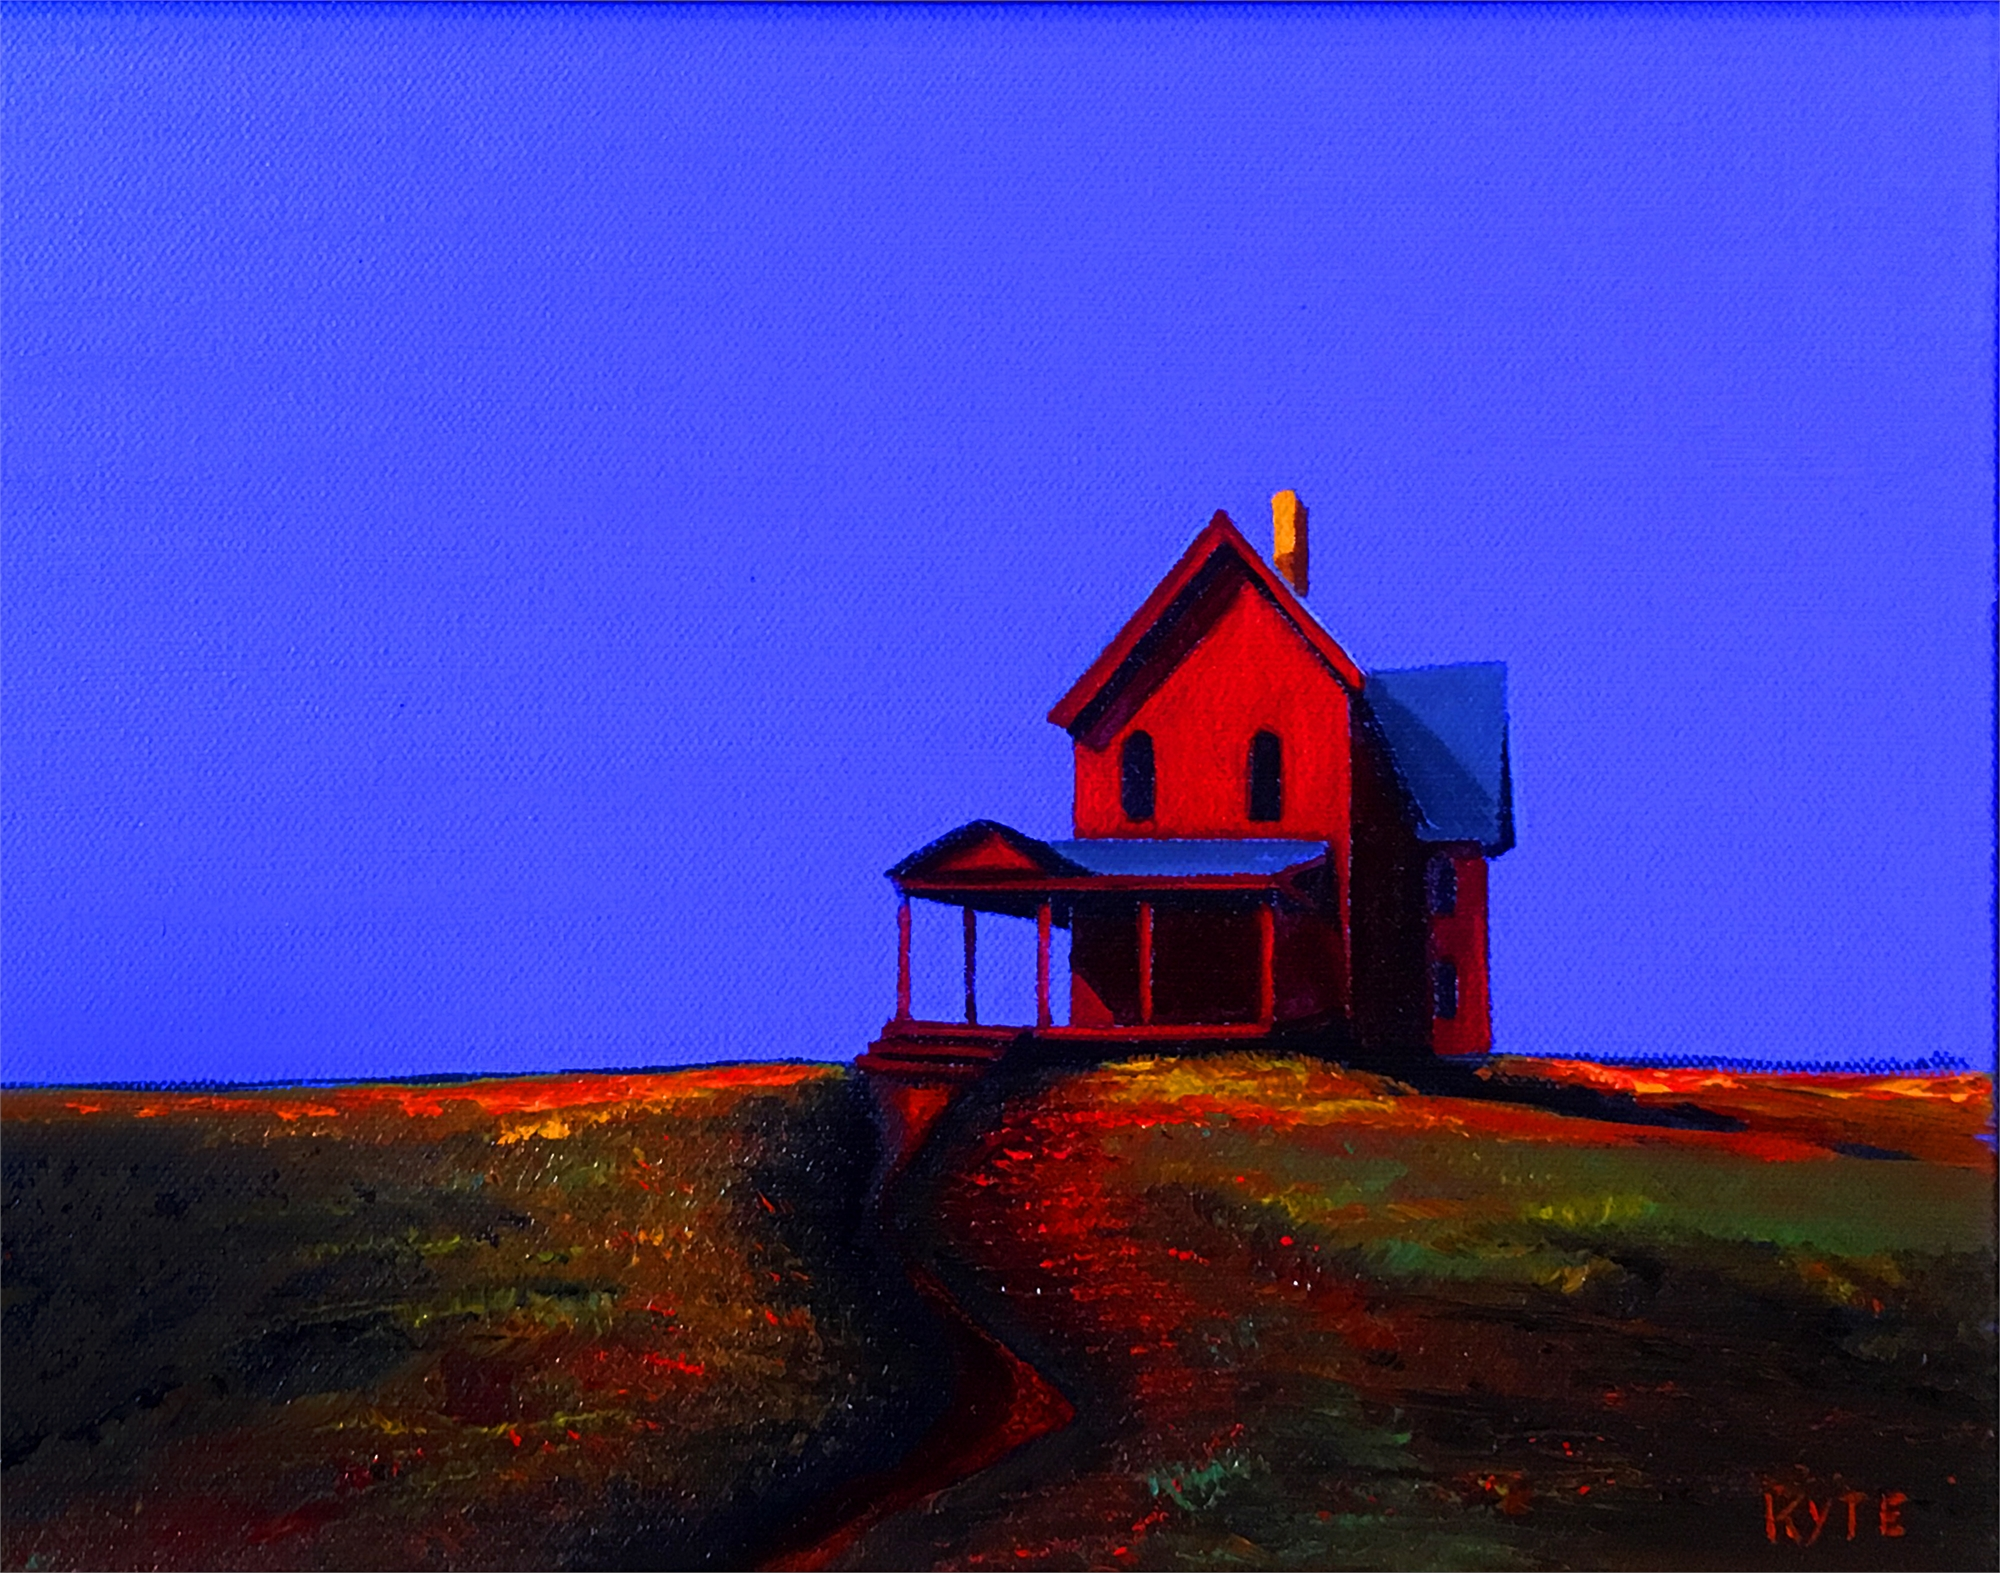 The Red House III by KYTE